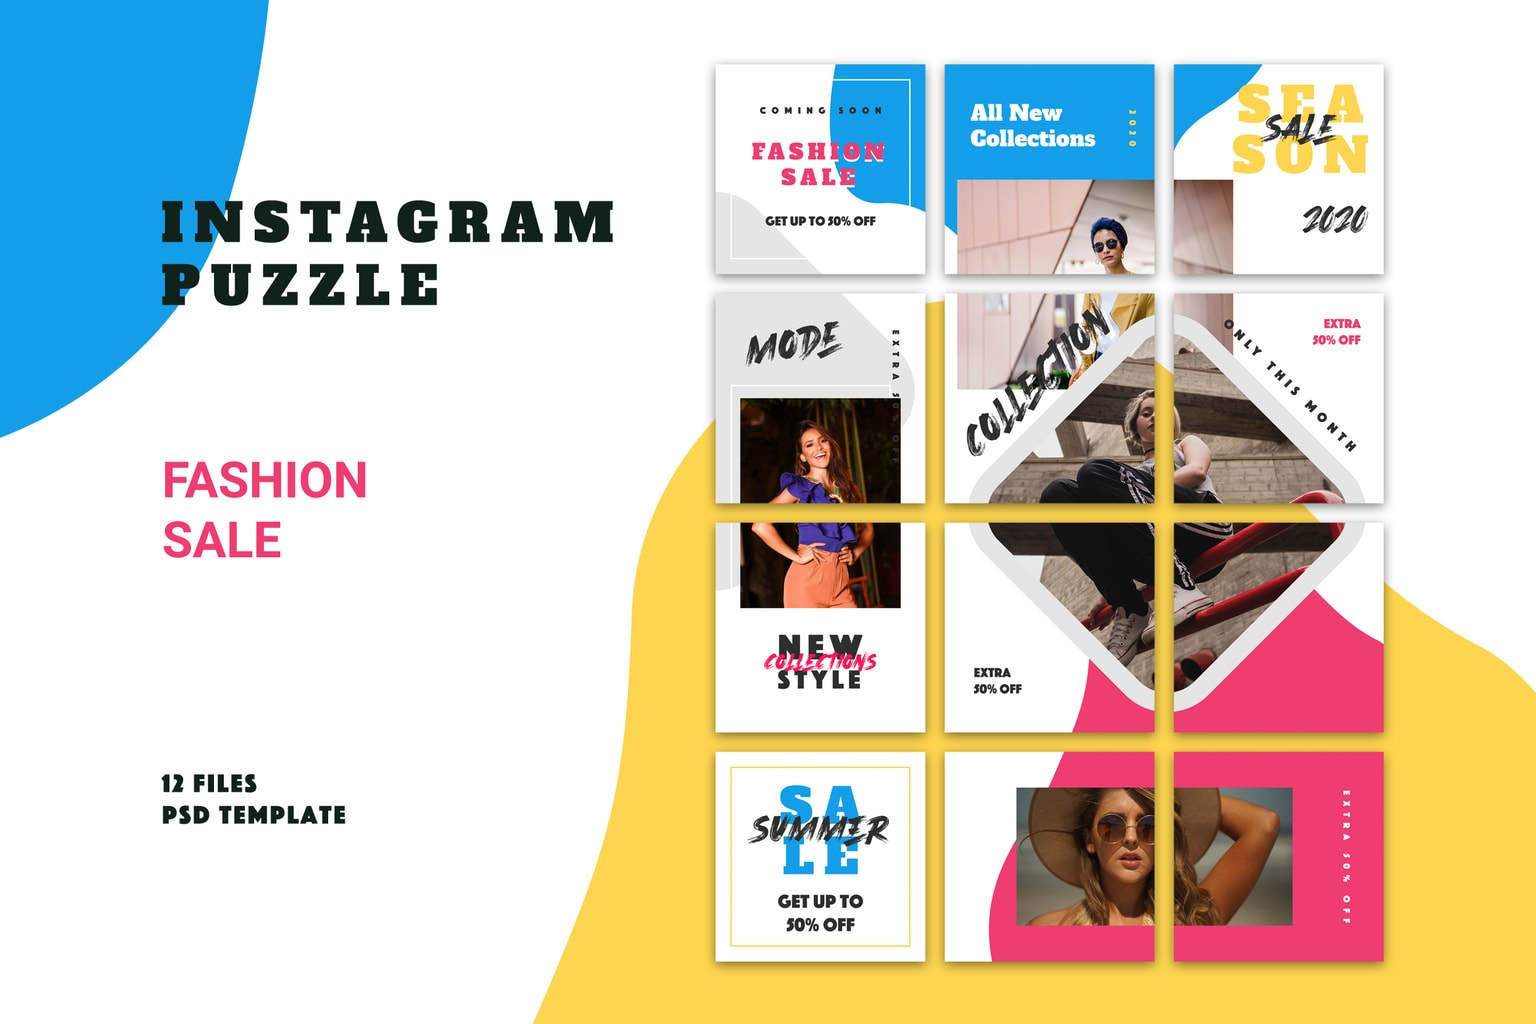 instagram puzzle summer sale collection 4